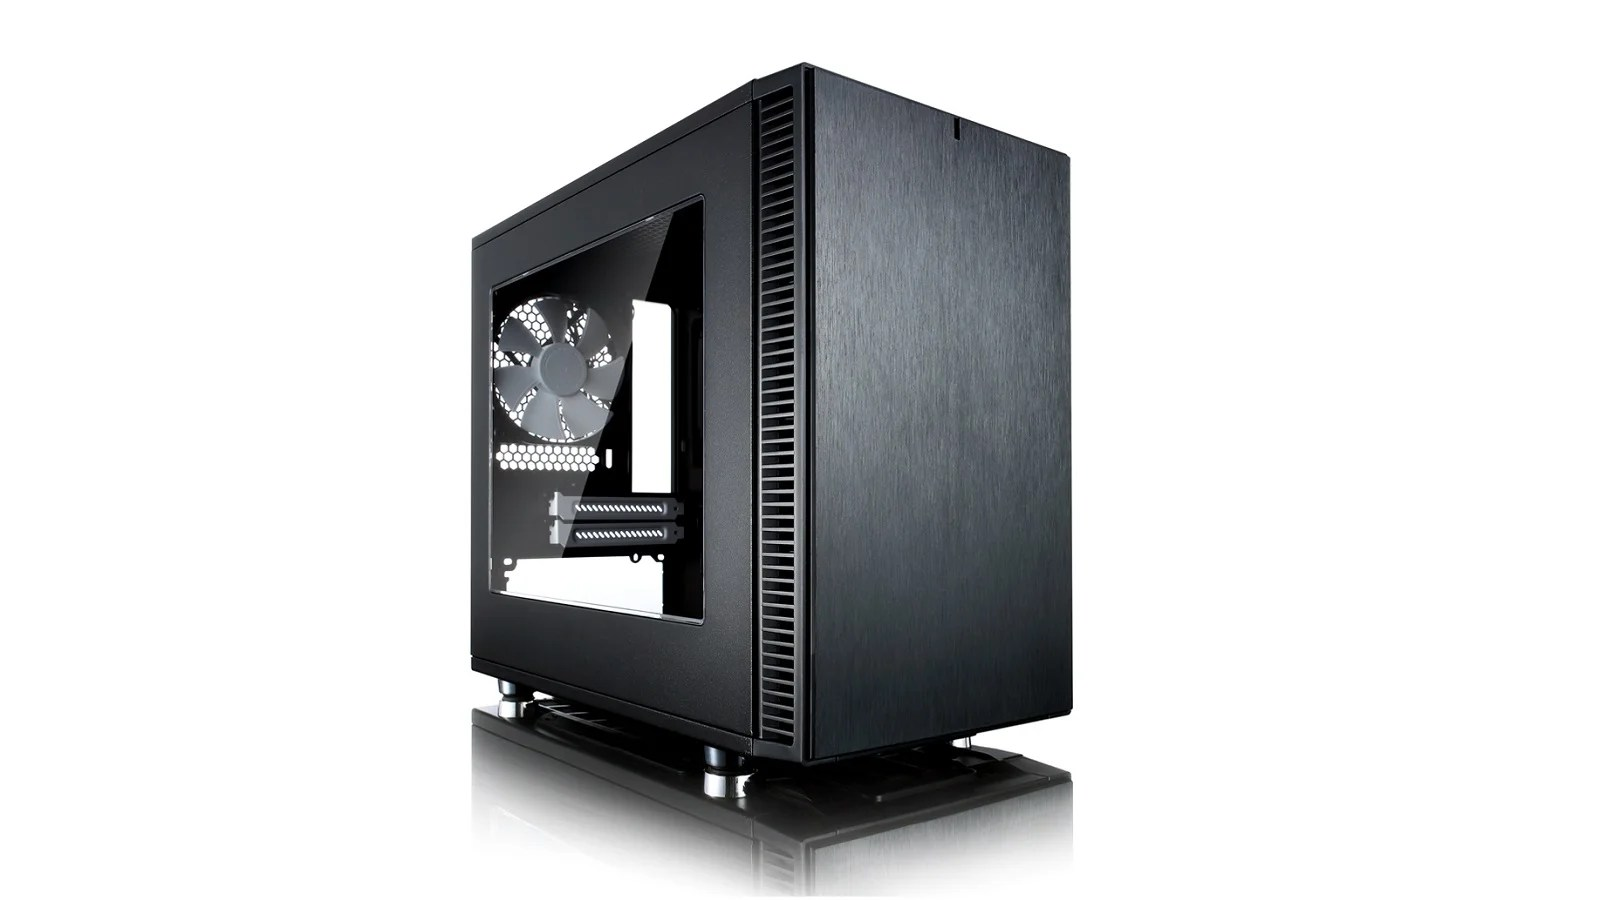 Case Pc Best Pc Cases 2018 Build A Quiet Stylish Pc Expert Reviews